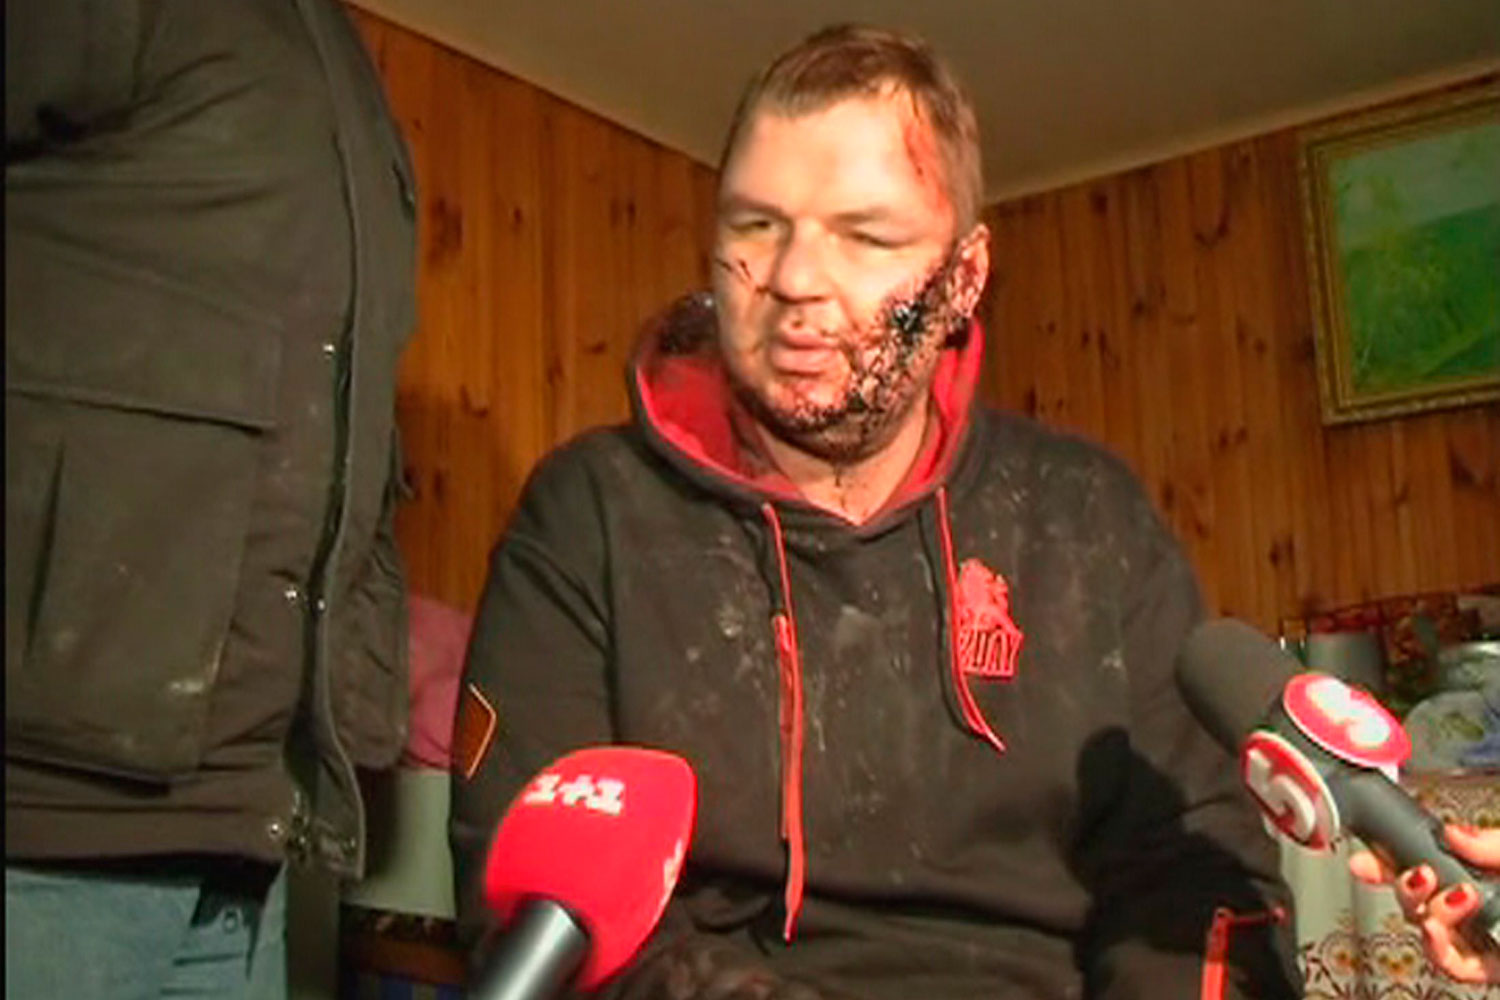 Dmytro Bulatov, 35, one of the leaders of anti-government protest motorcades called 'Automaidan', speaks to journalists after being found near Kiev, Jan. 30, 2014.